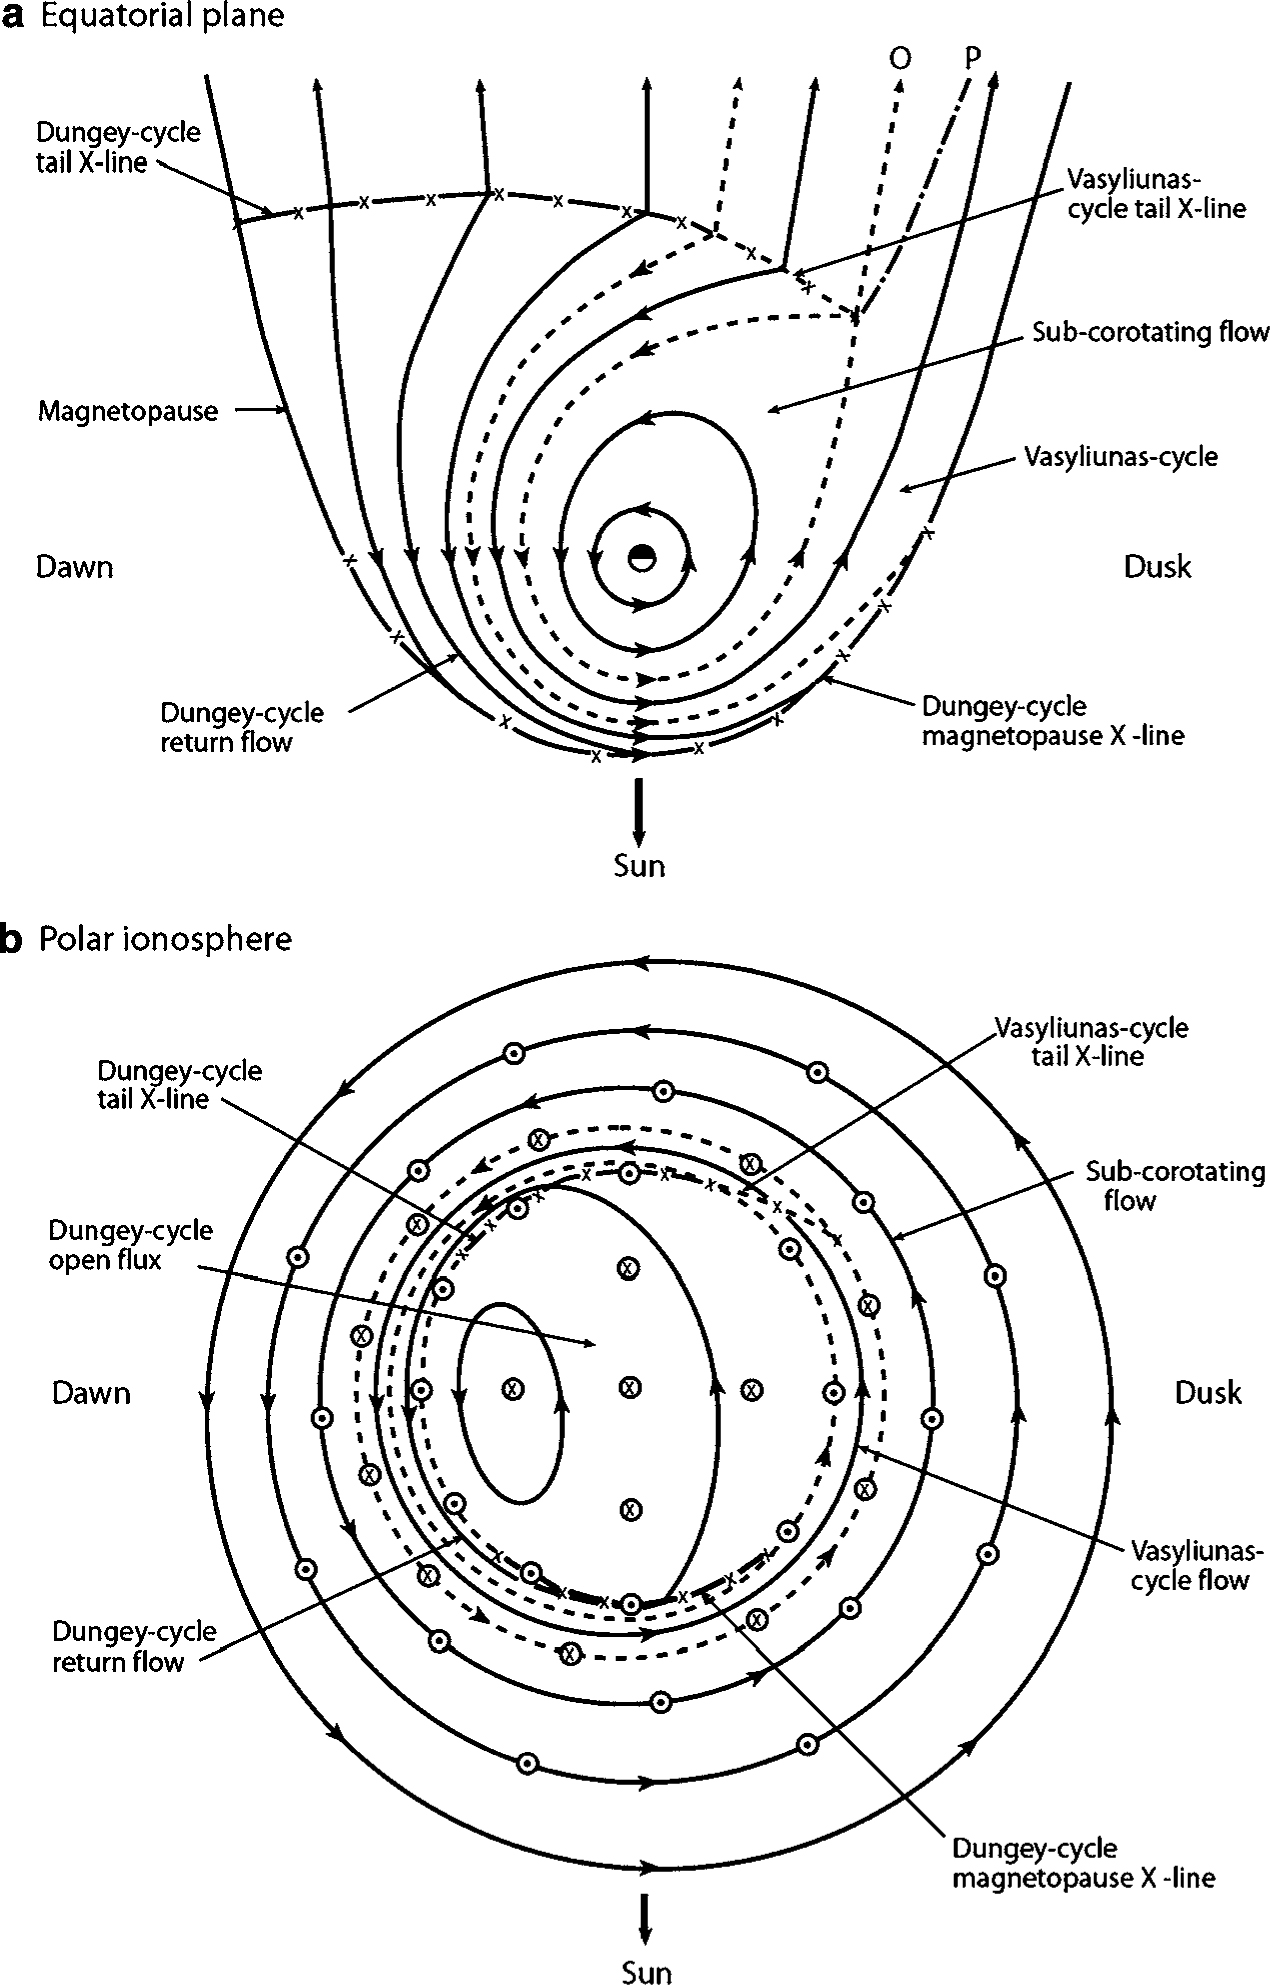 Auroral Processes Springerlink. Open In New Window. Wiring. Ingersoll 4020 Wiring Diagram 1996 At Scoala.co